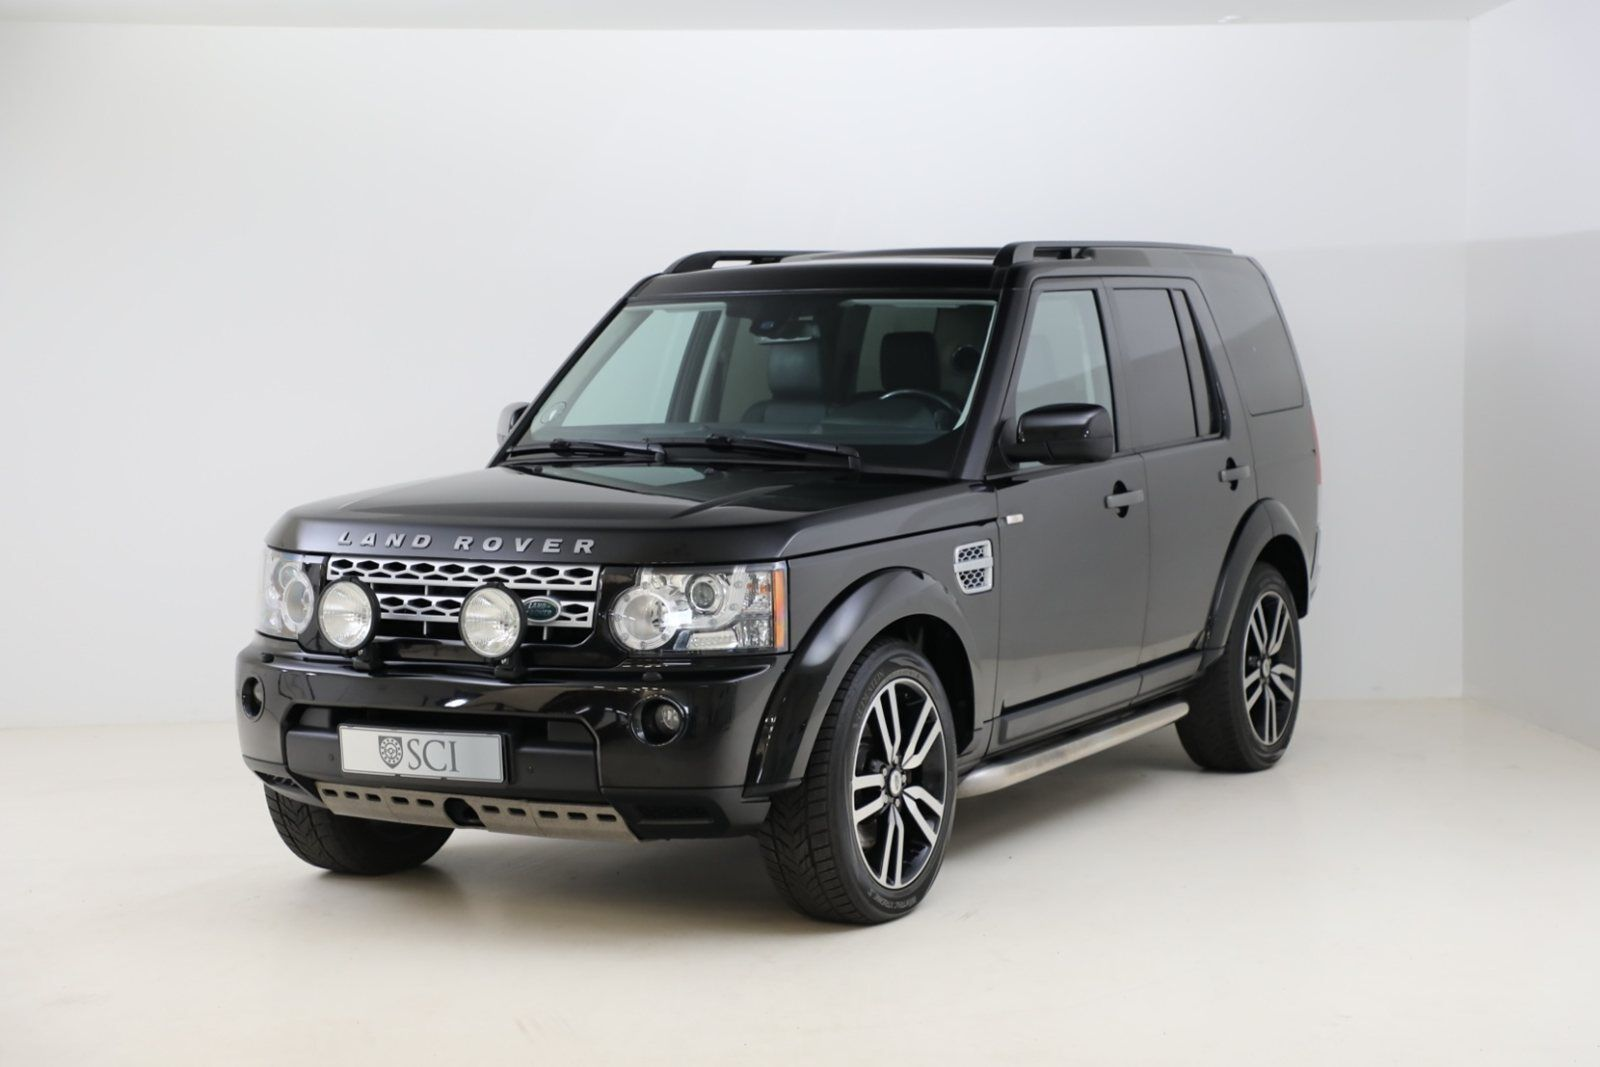 Land Rover Discovery 4 3,0 SDV6 HSE aut. 5d - 184.900 kr.